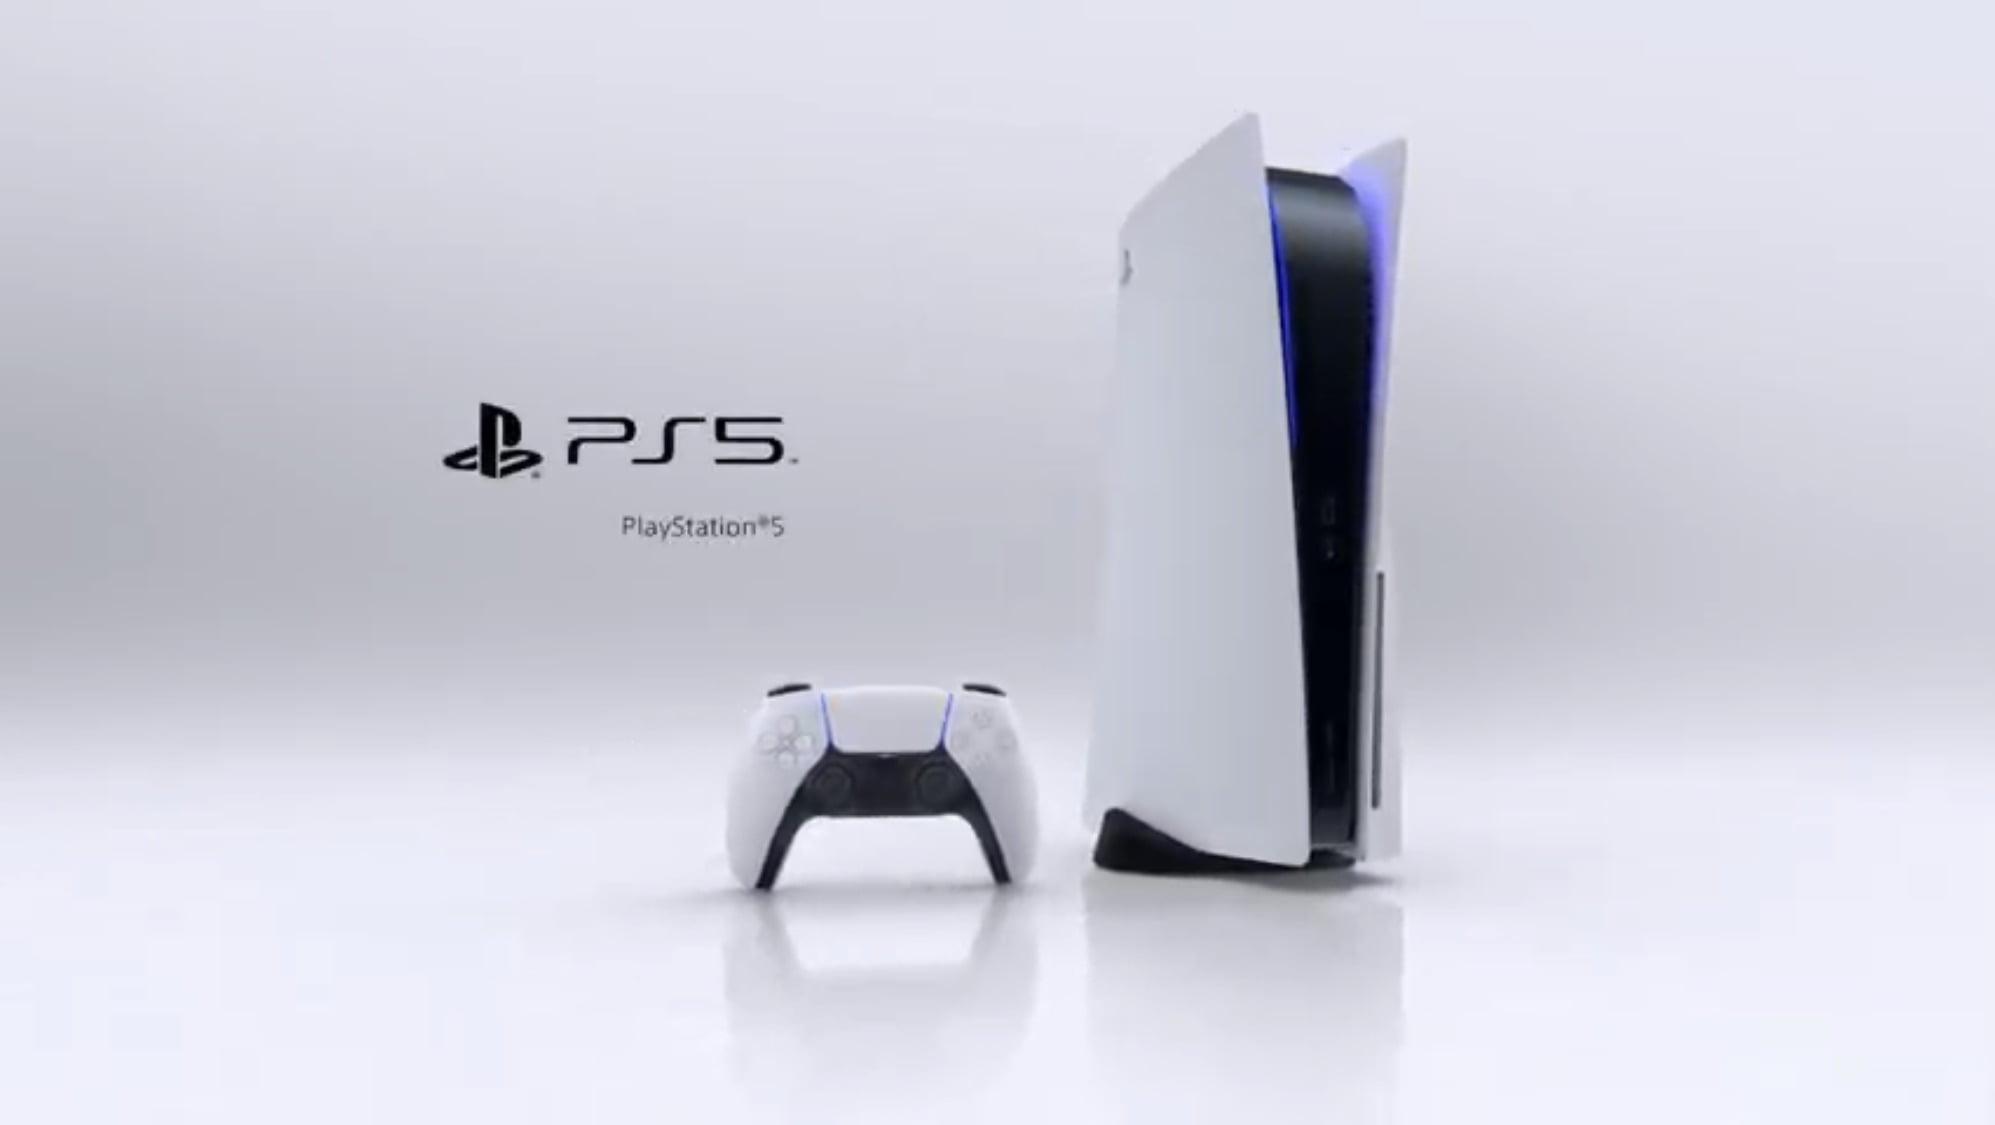 Here is Playstation 5, the design console that splits in two